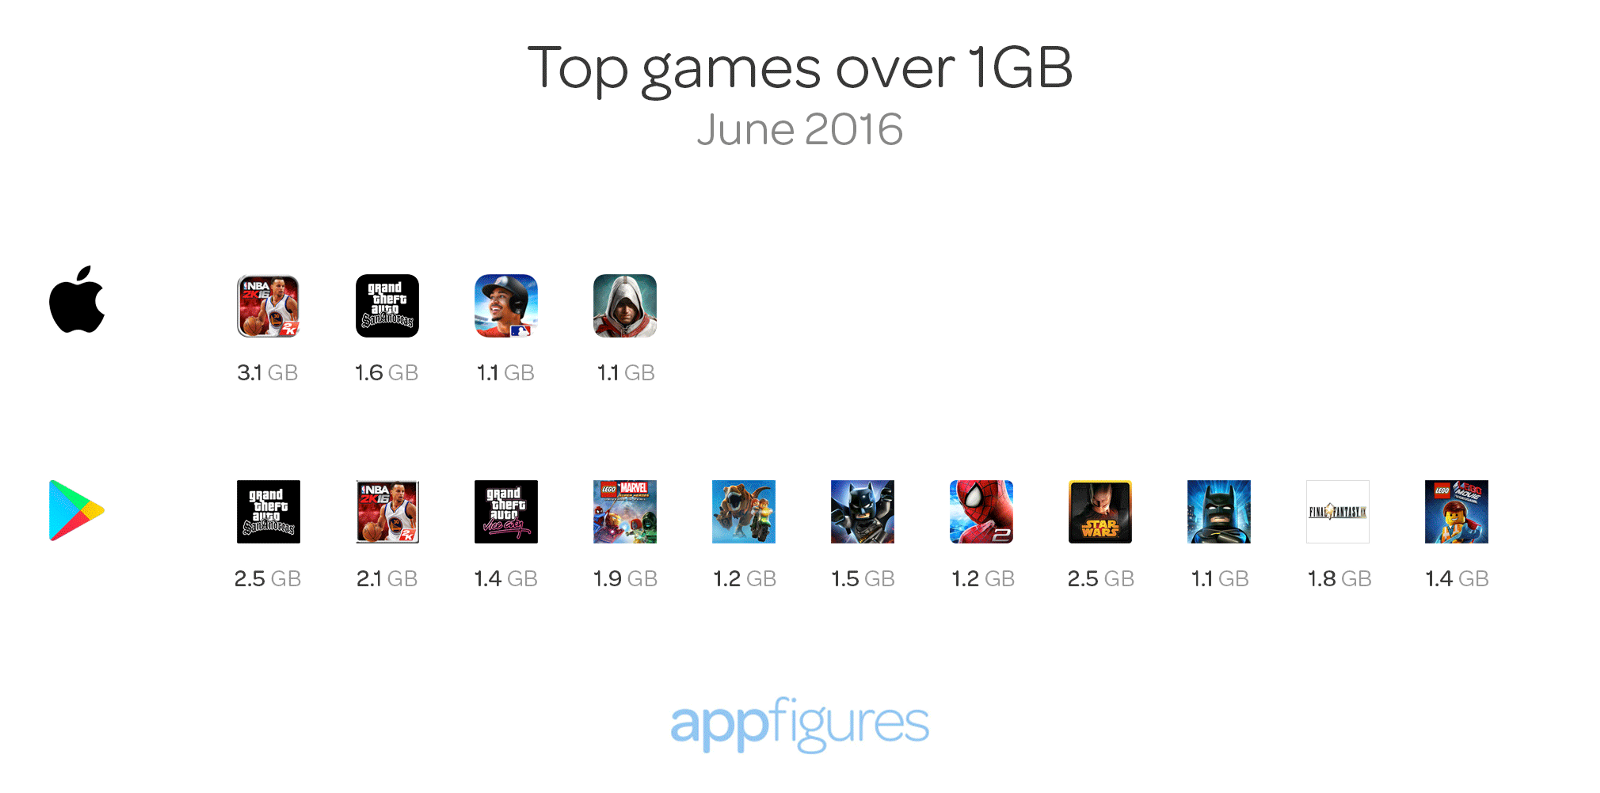 Top ranked iOS and Android games that are over 1GB in size - App store insights by appFigures